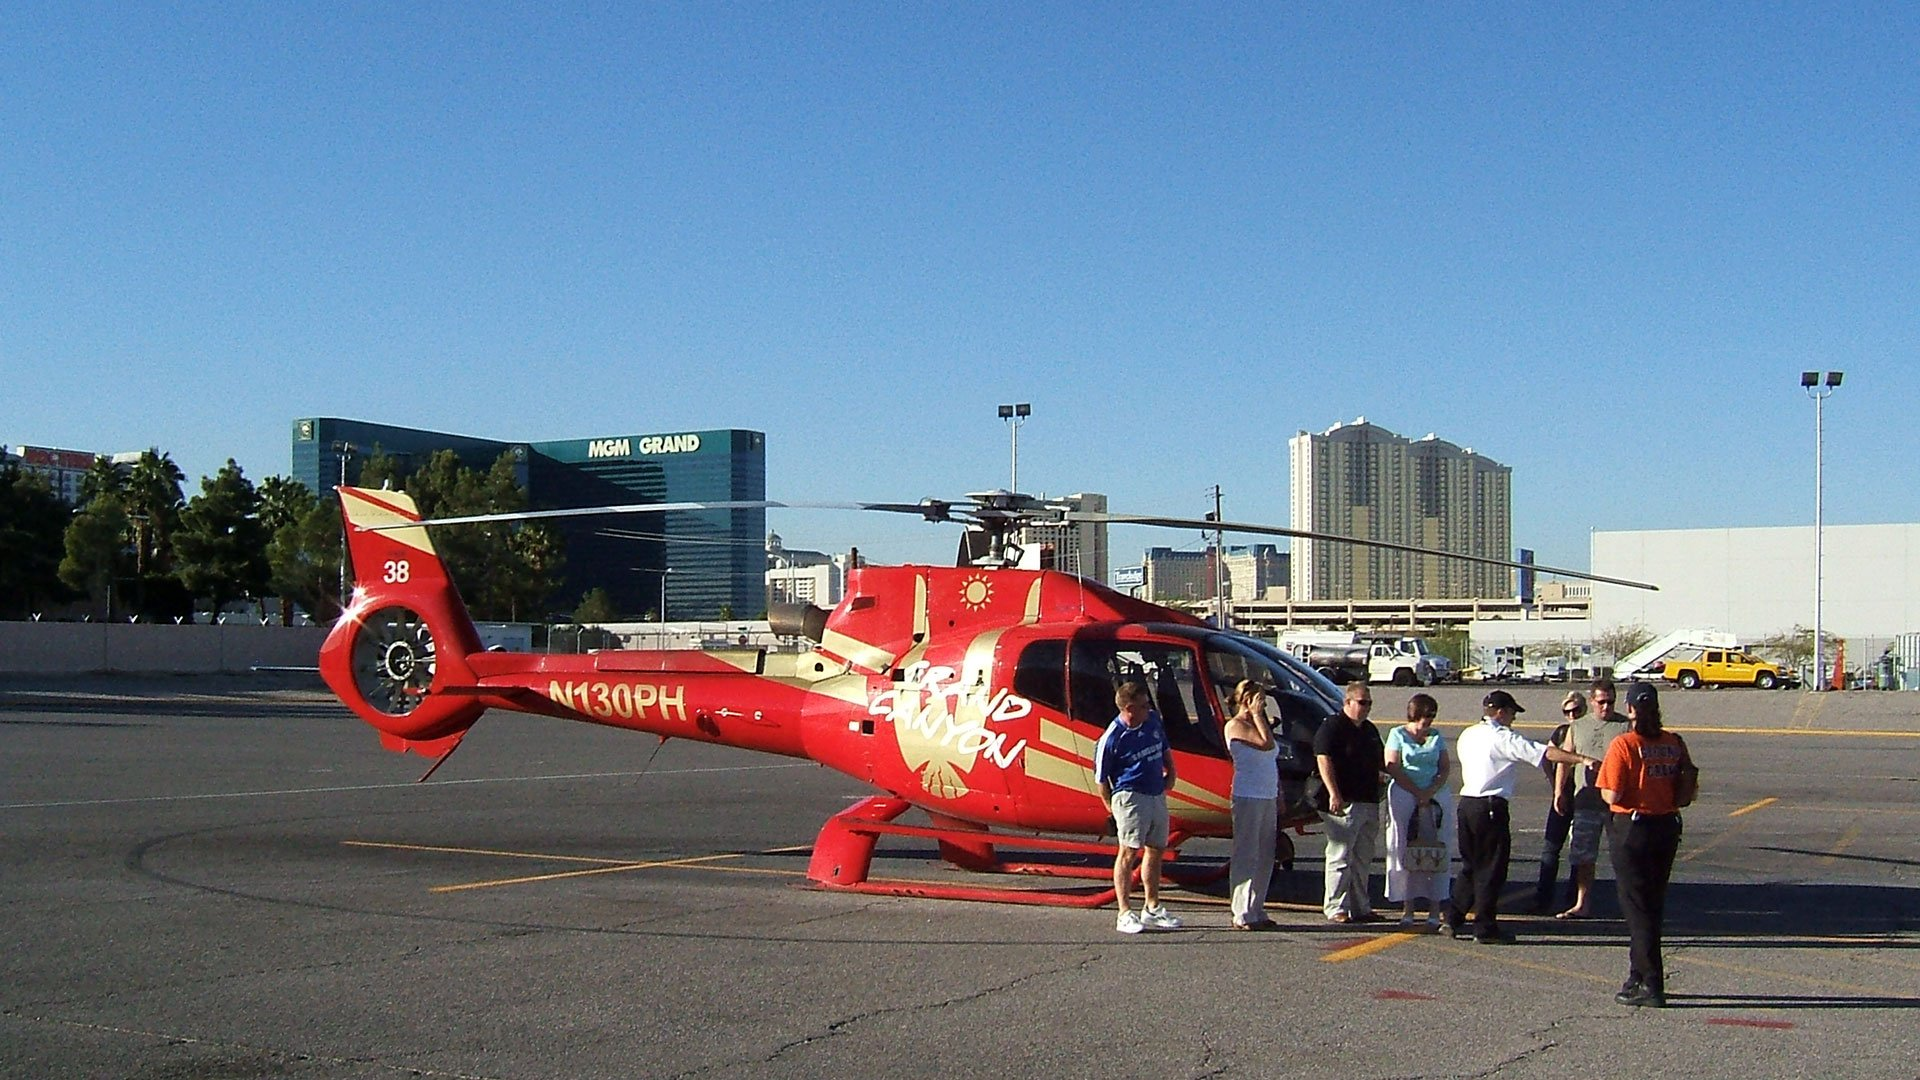 Passengers preparing to board their helicopter tour with the Las Vegas Strip in the background.